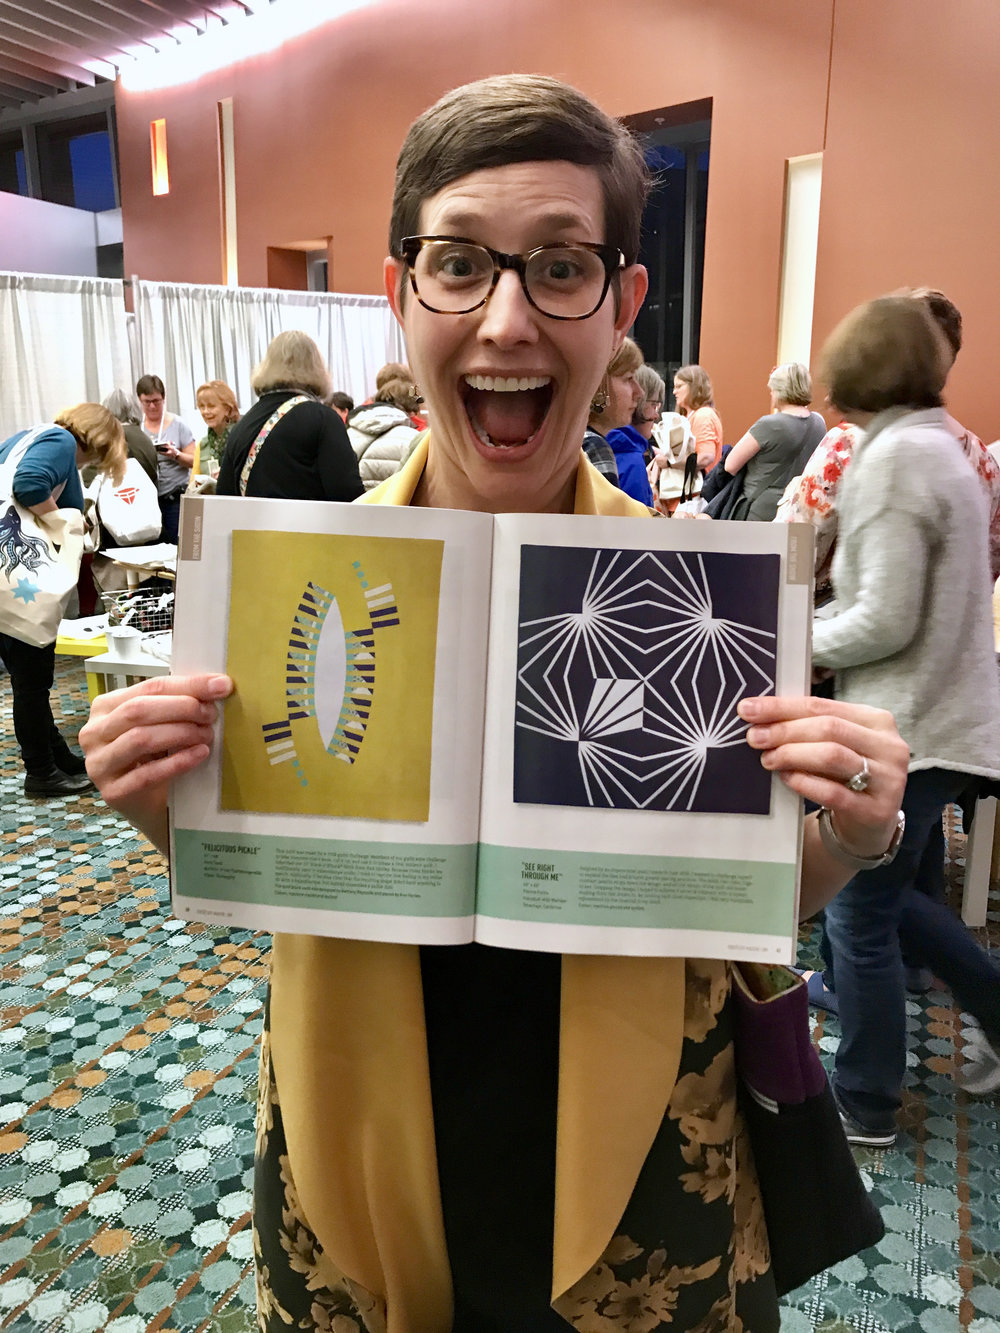 Kelly's quilt is featured in the 2019 issue of QuiltCon Magazine